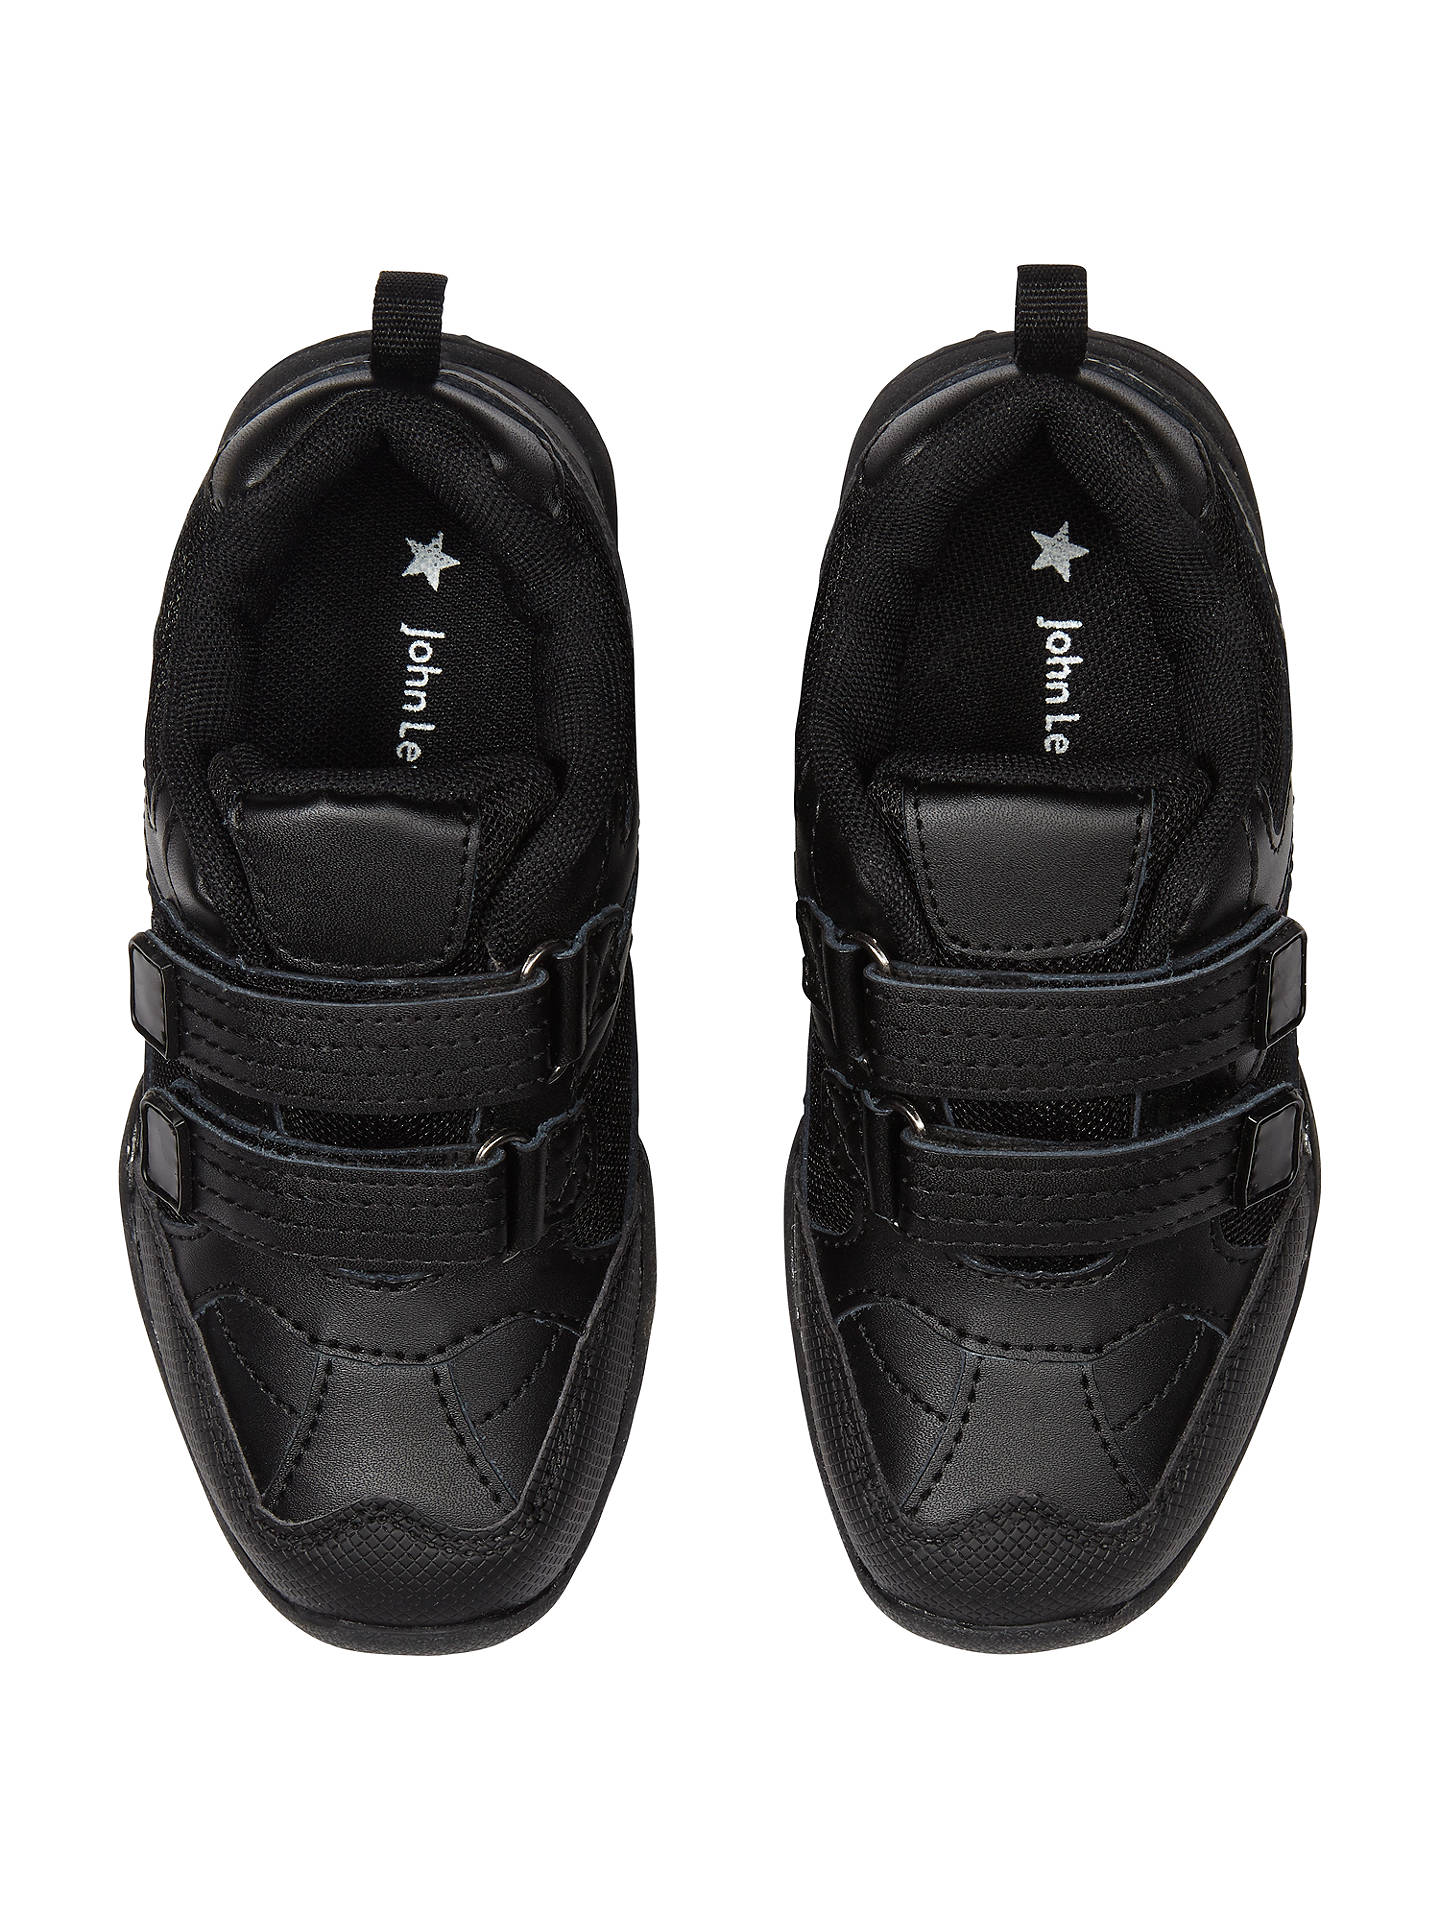 BuyJohn Lewis Stamford Trainers, Black, 8 Jnr Online at johnlewis.com